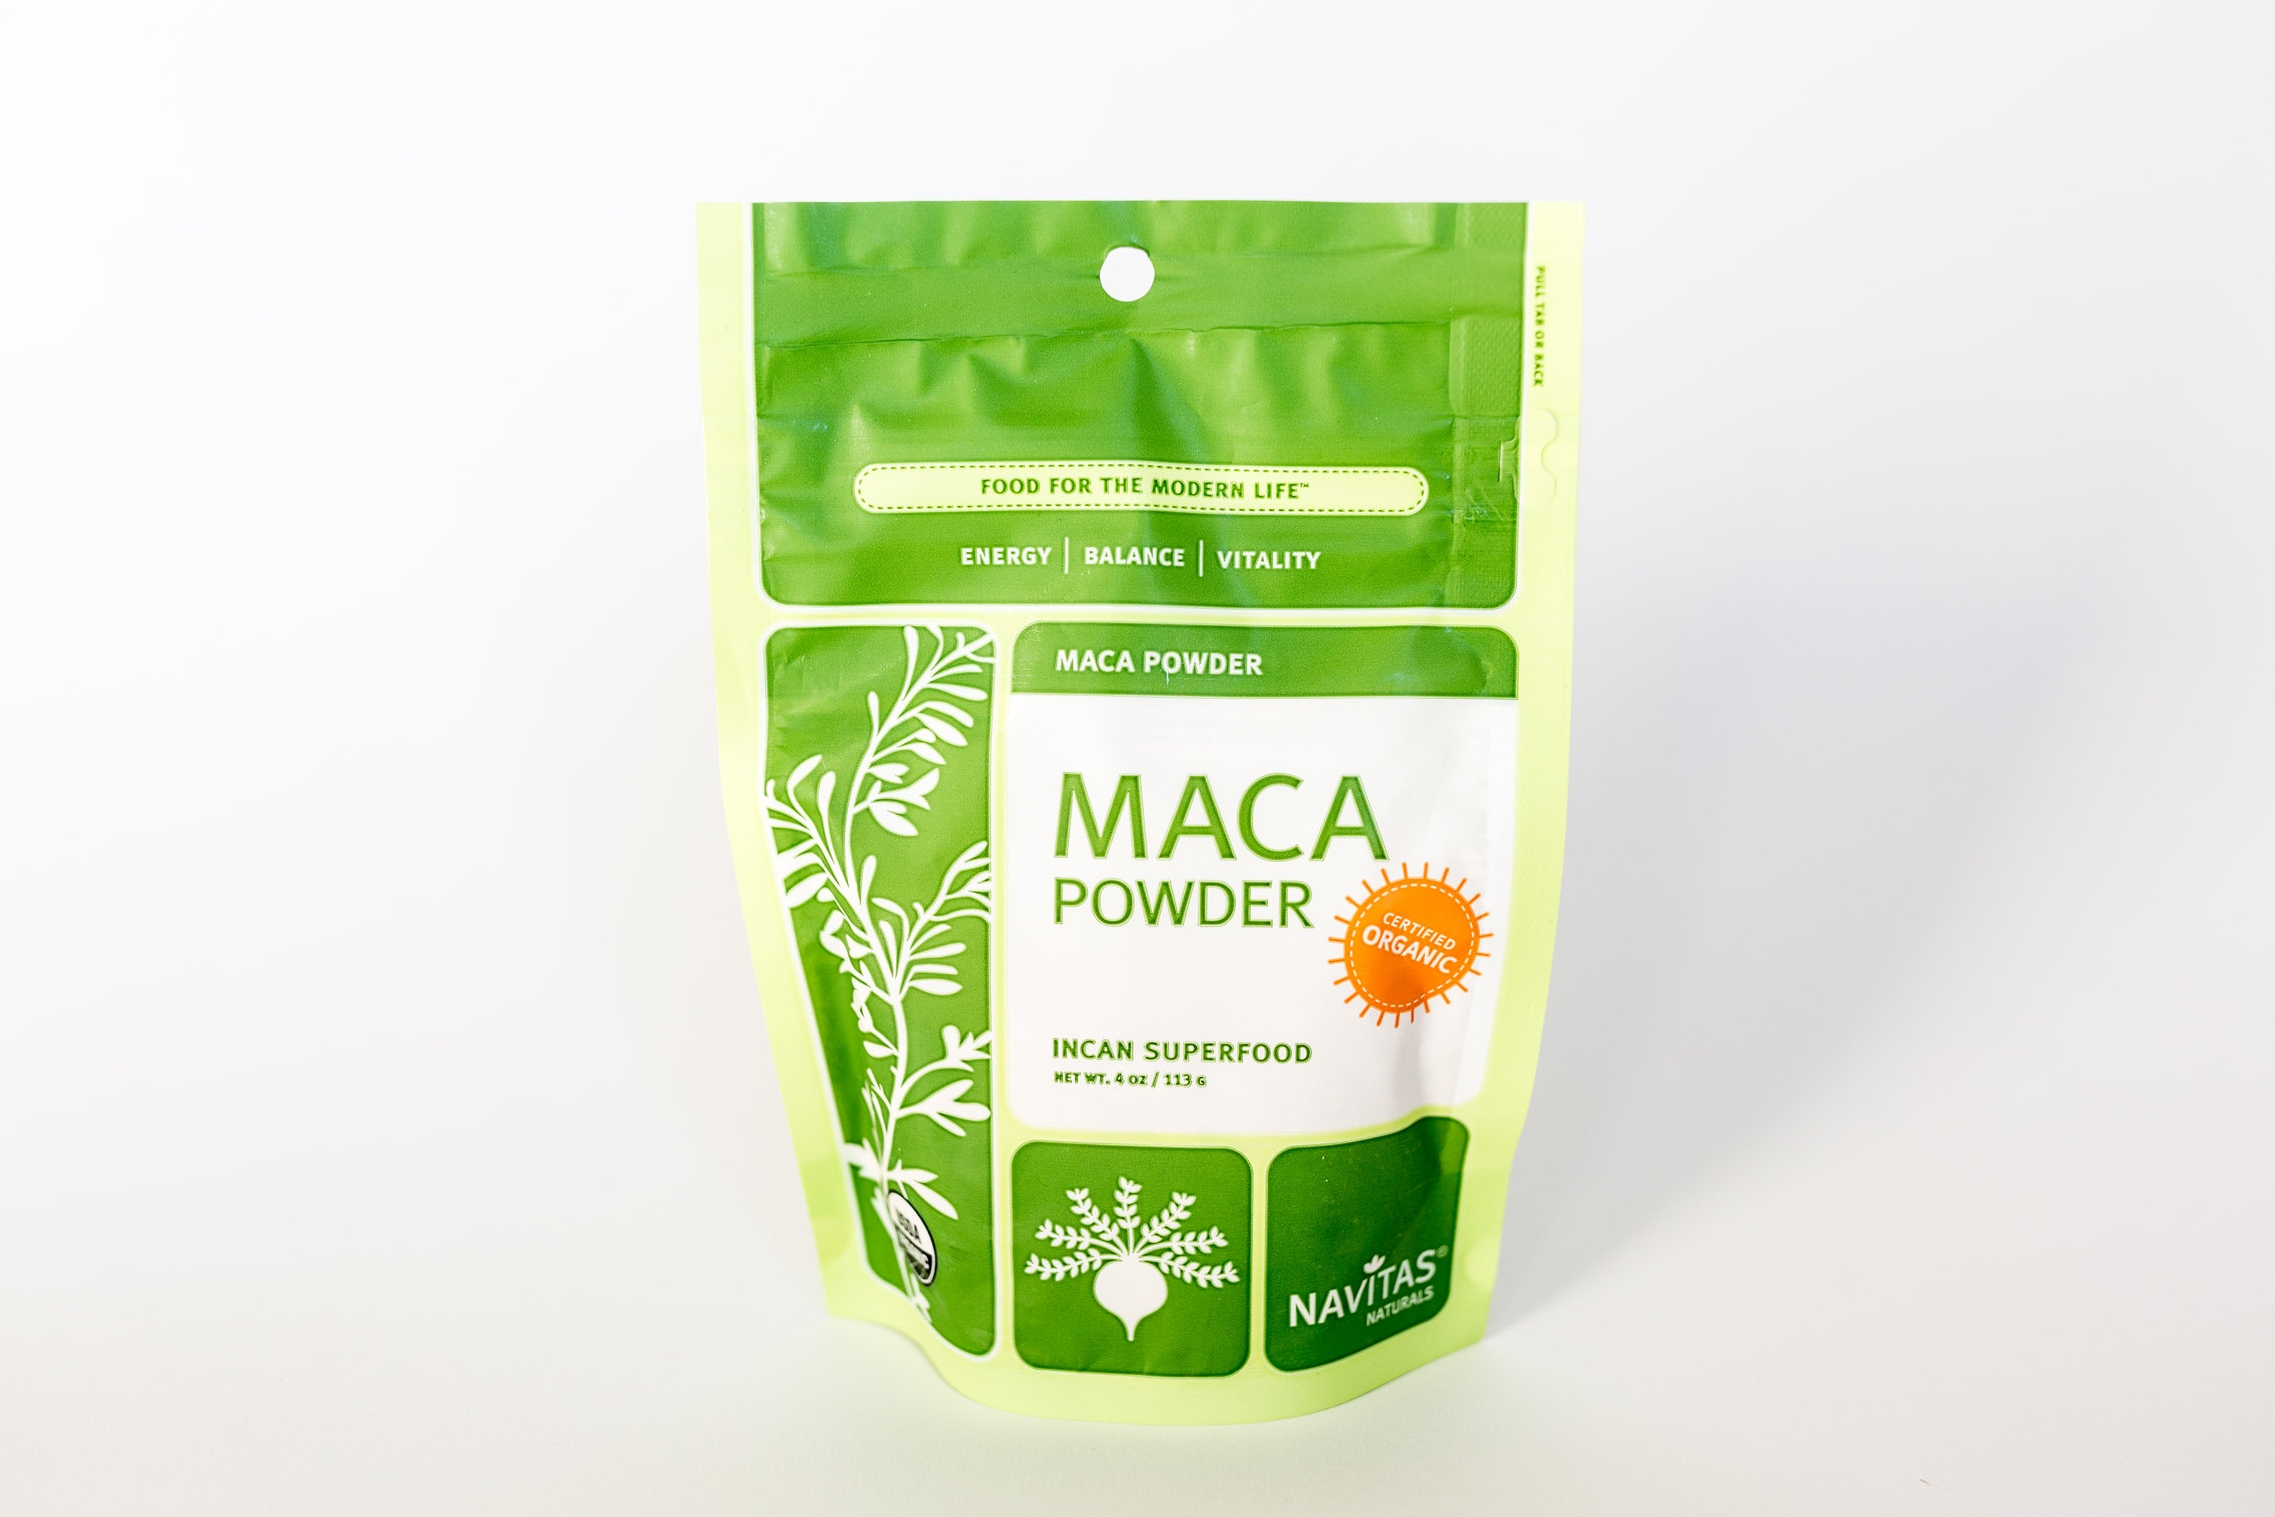 Benefits:  Maca comes from a root that has a restorative affect on your adrenal glands, which in turn can boost your energy levels. Drinking too much coffee, being under too much stress, and exerting ourselves beyond our limits have a taxing effect on our adrenal glands. So Maca is a great supplement for just about everyone. Furthermore, Maca can also help balance your hormones, need I say more?   Consumption:  1T per day in smoothies or oatmeal